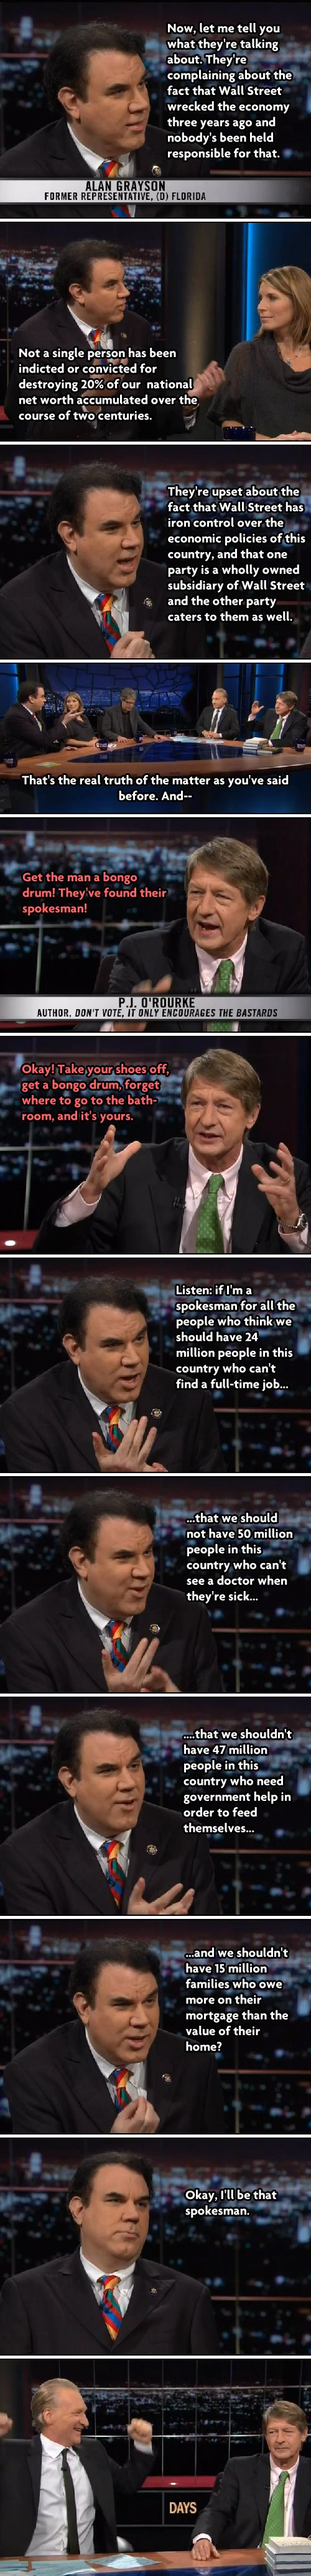 Occupy Complaints Explained Briefly: All of #ows summed up in one exchange between Alan Grayson an... on Twitpic